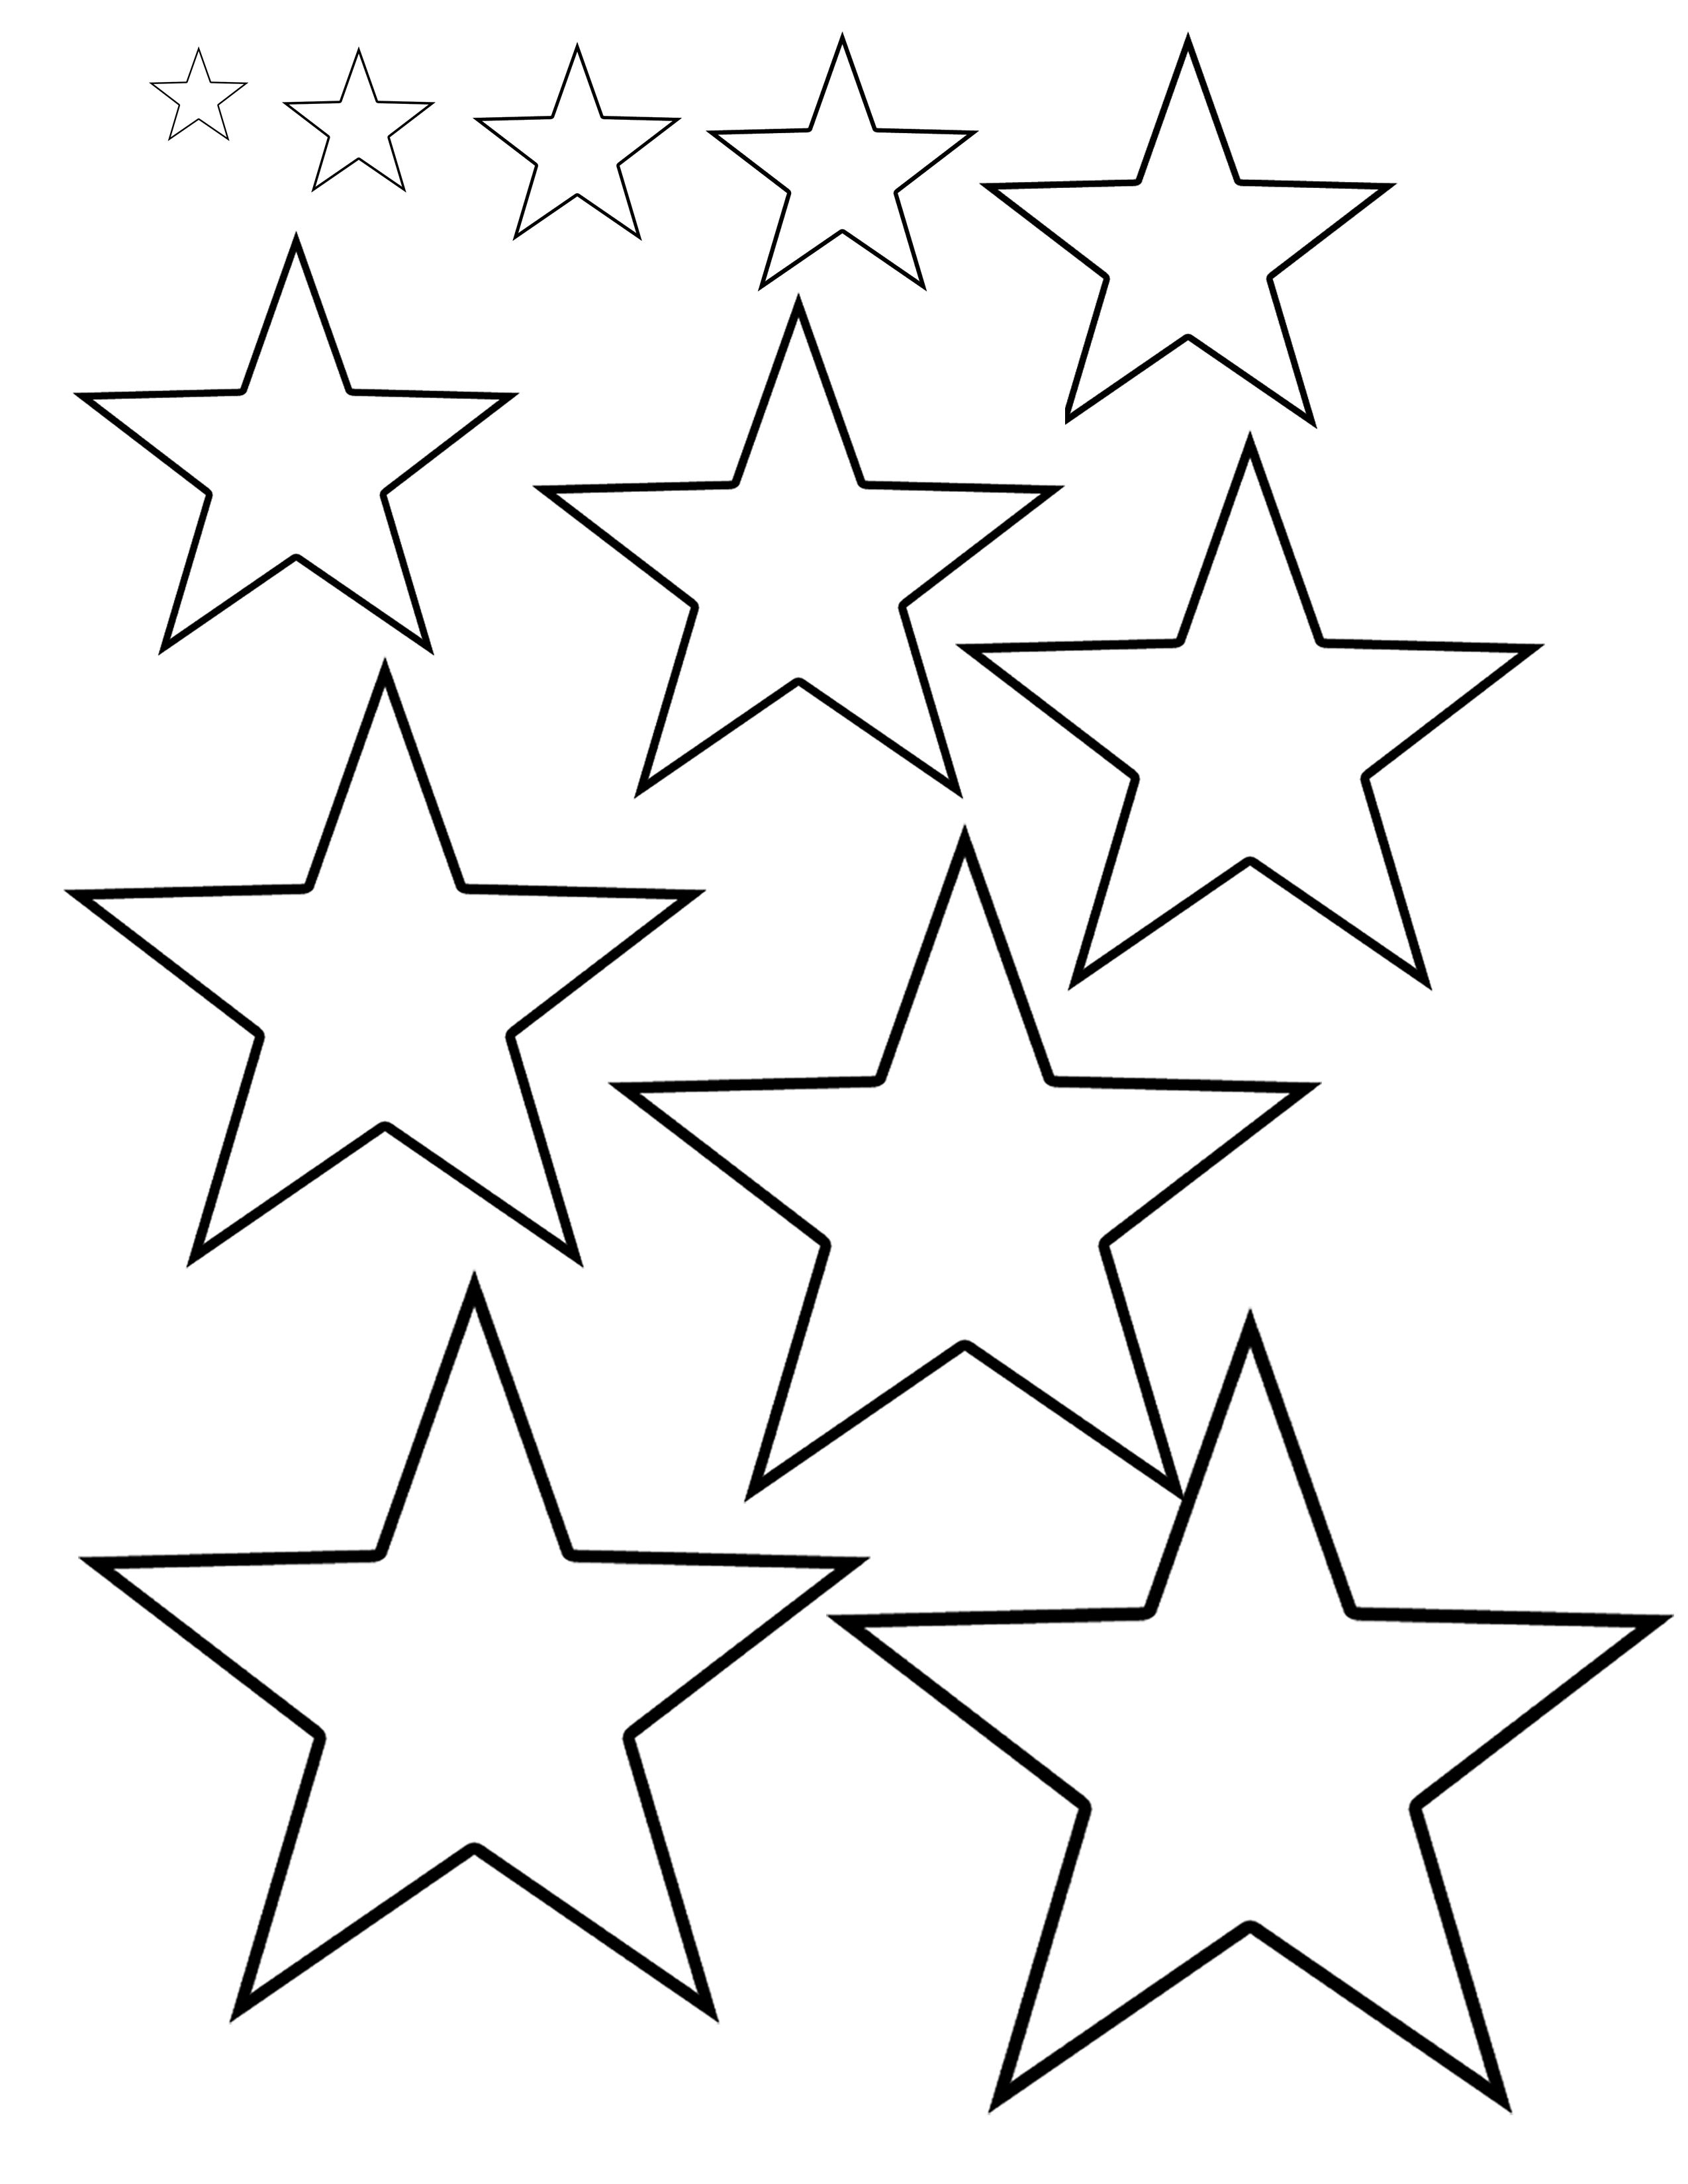 Different Sizes Of Stars Sheet I Made For Tattoo Artists